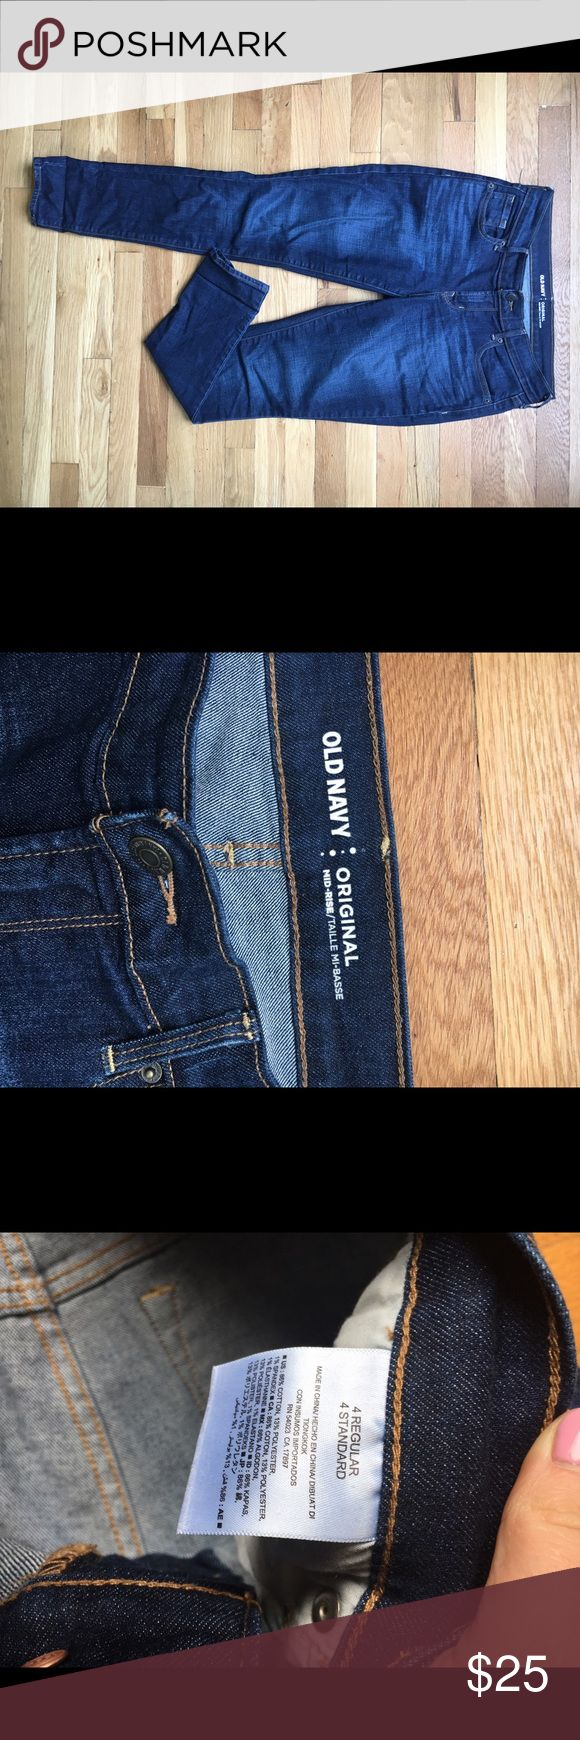 """Old Navy Skinny Jeans Great dark denim for anything from casual Friday at the office to girls night at the bar. They're on the """"Lower end"""" of mid rise but not uncomfortable :) Old Navy Jeans Skinny"""